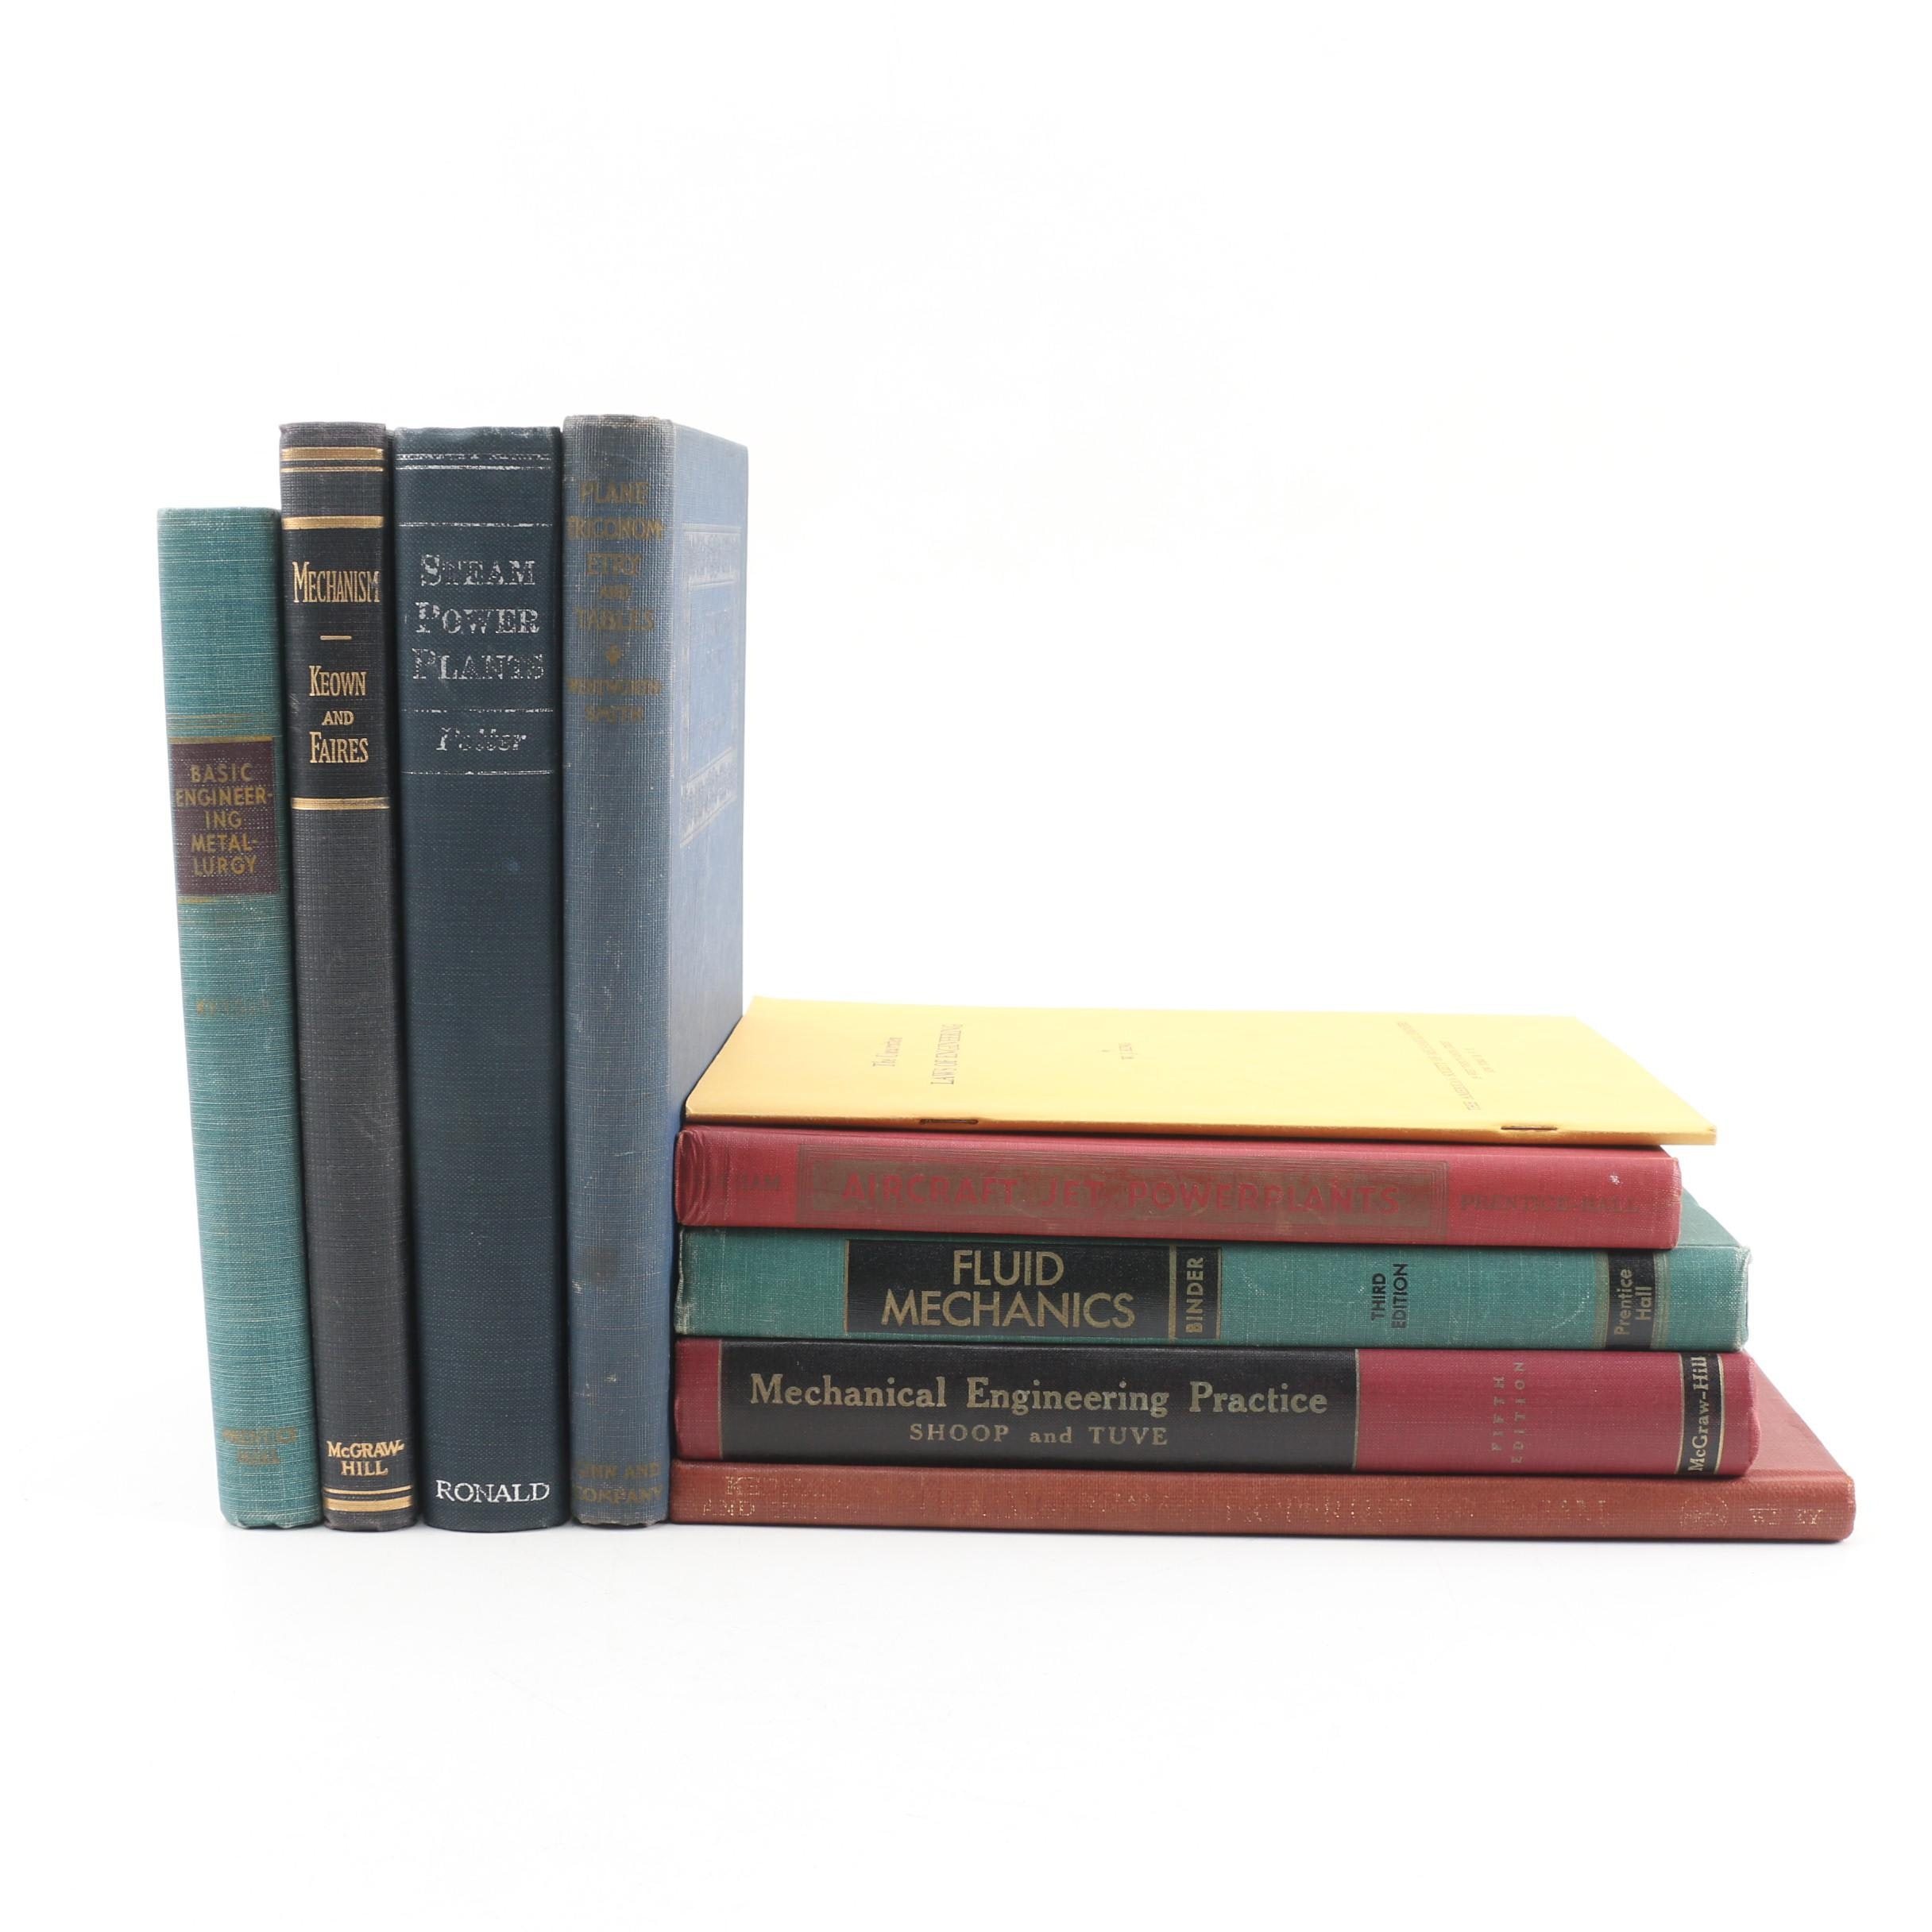 Vintage 1940s and 50s Reference Books featuring Engineering and Mechanics